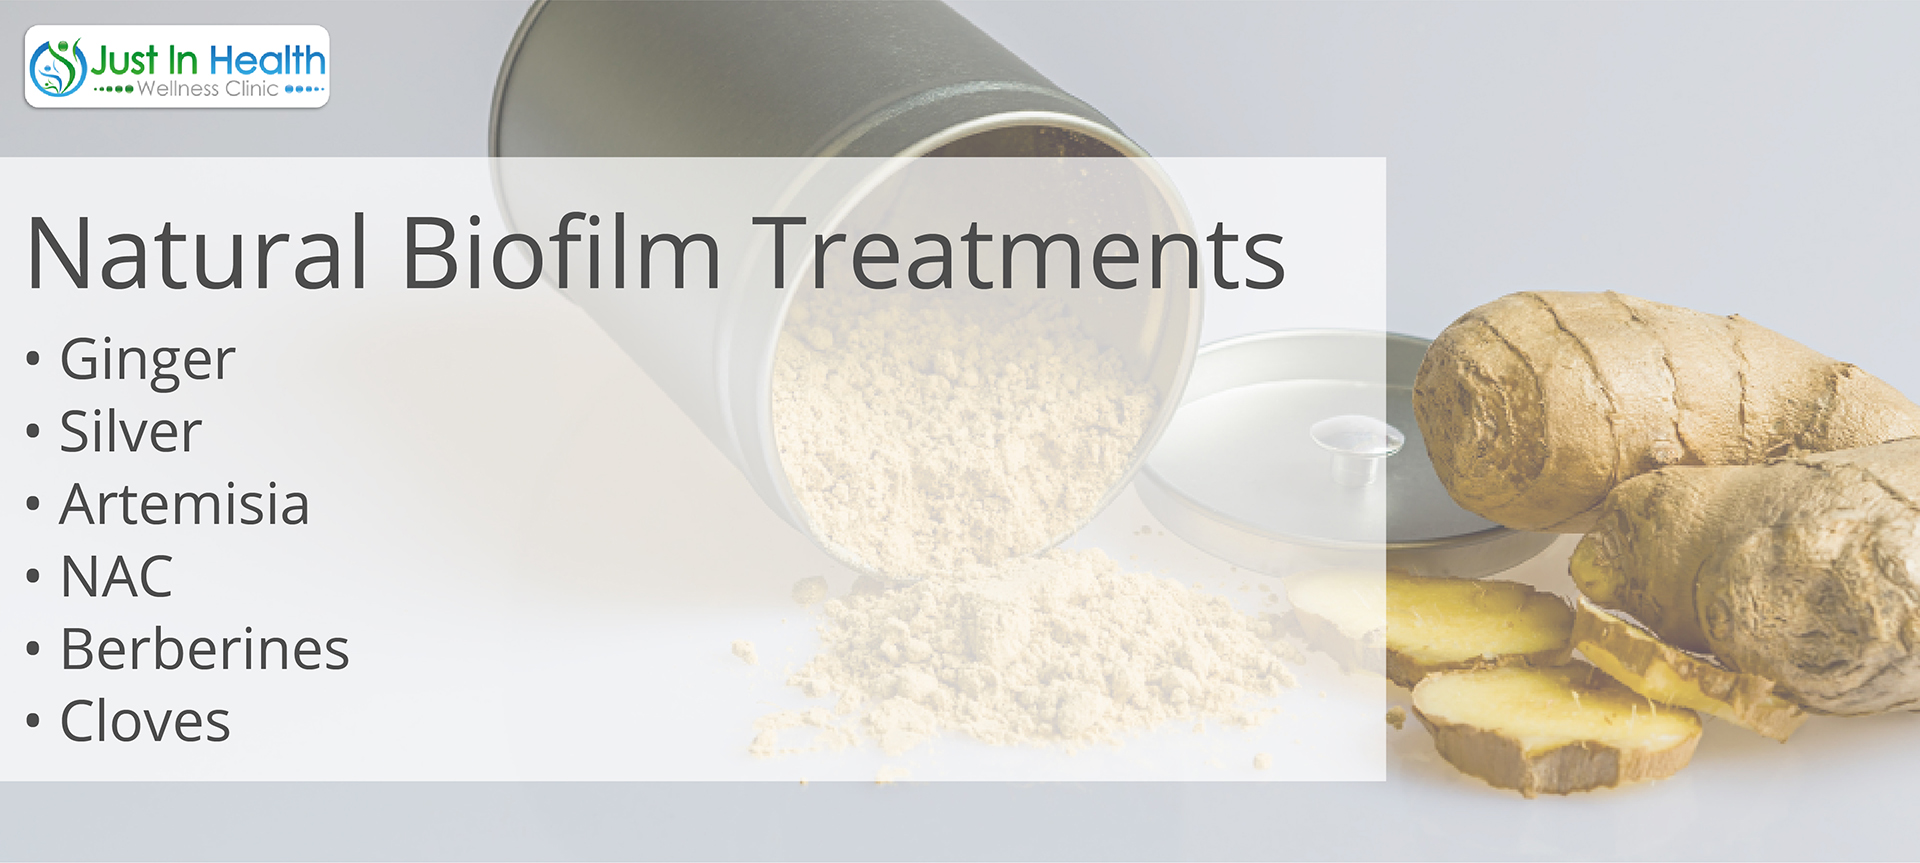 The natural treatments for Biofilms